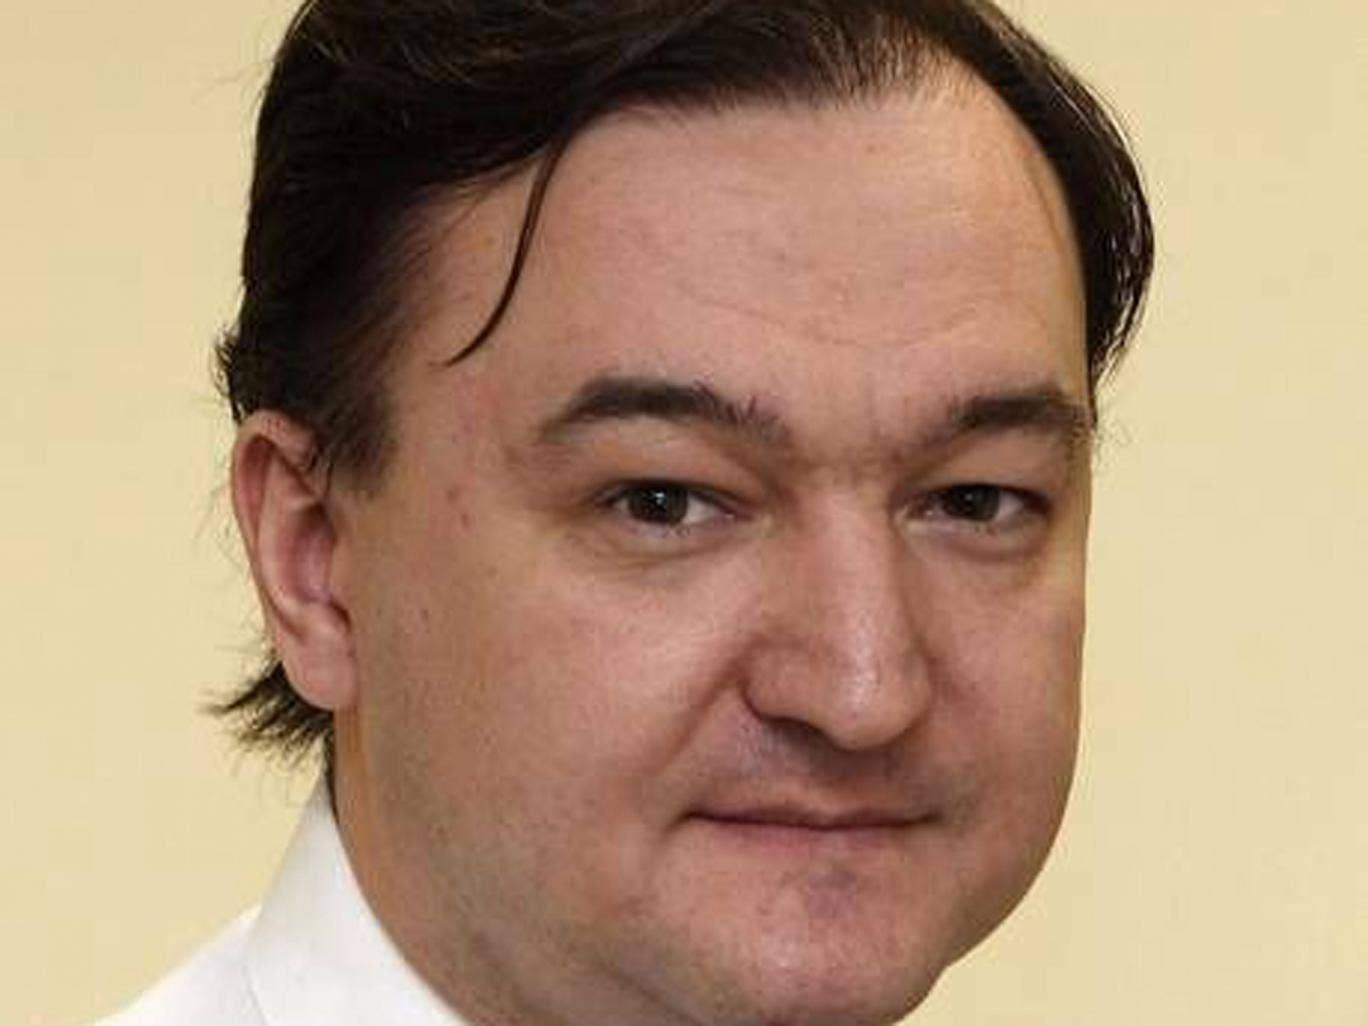 Sergei Magnitsky: The lawyer died in custody after helping to expose a large tax scam